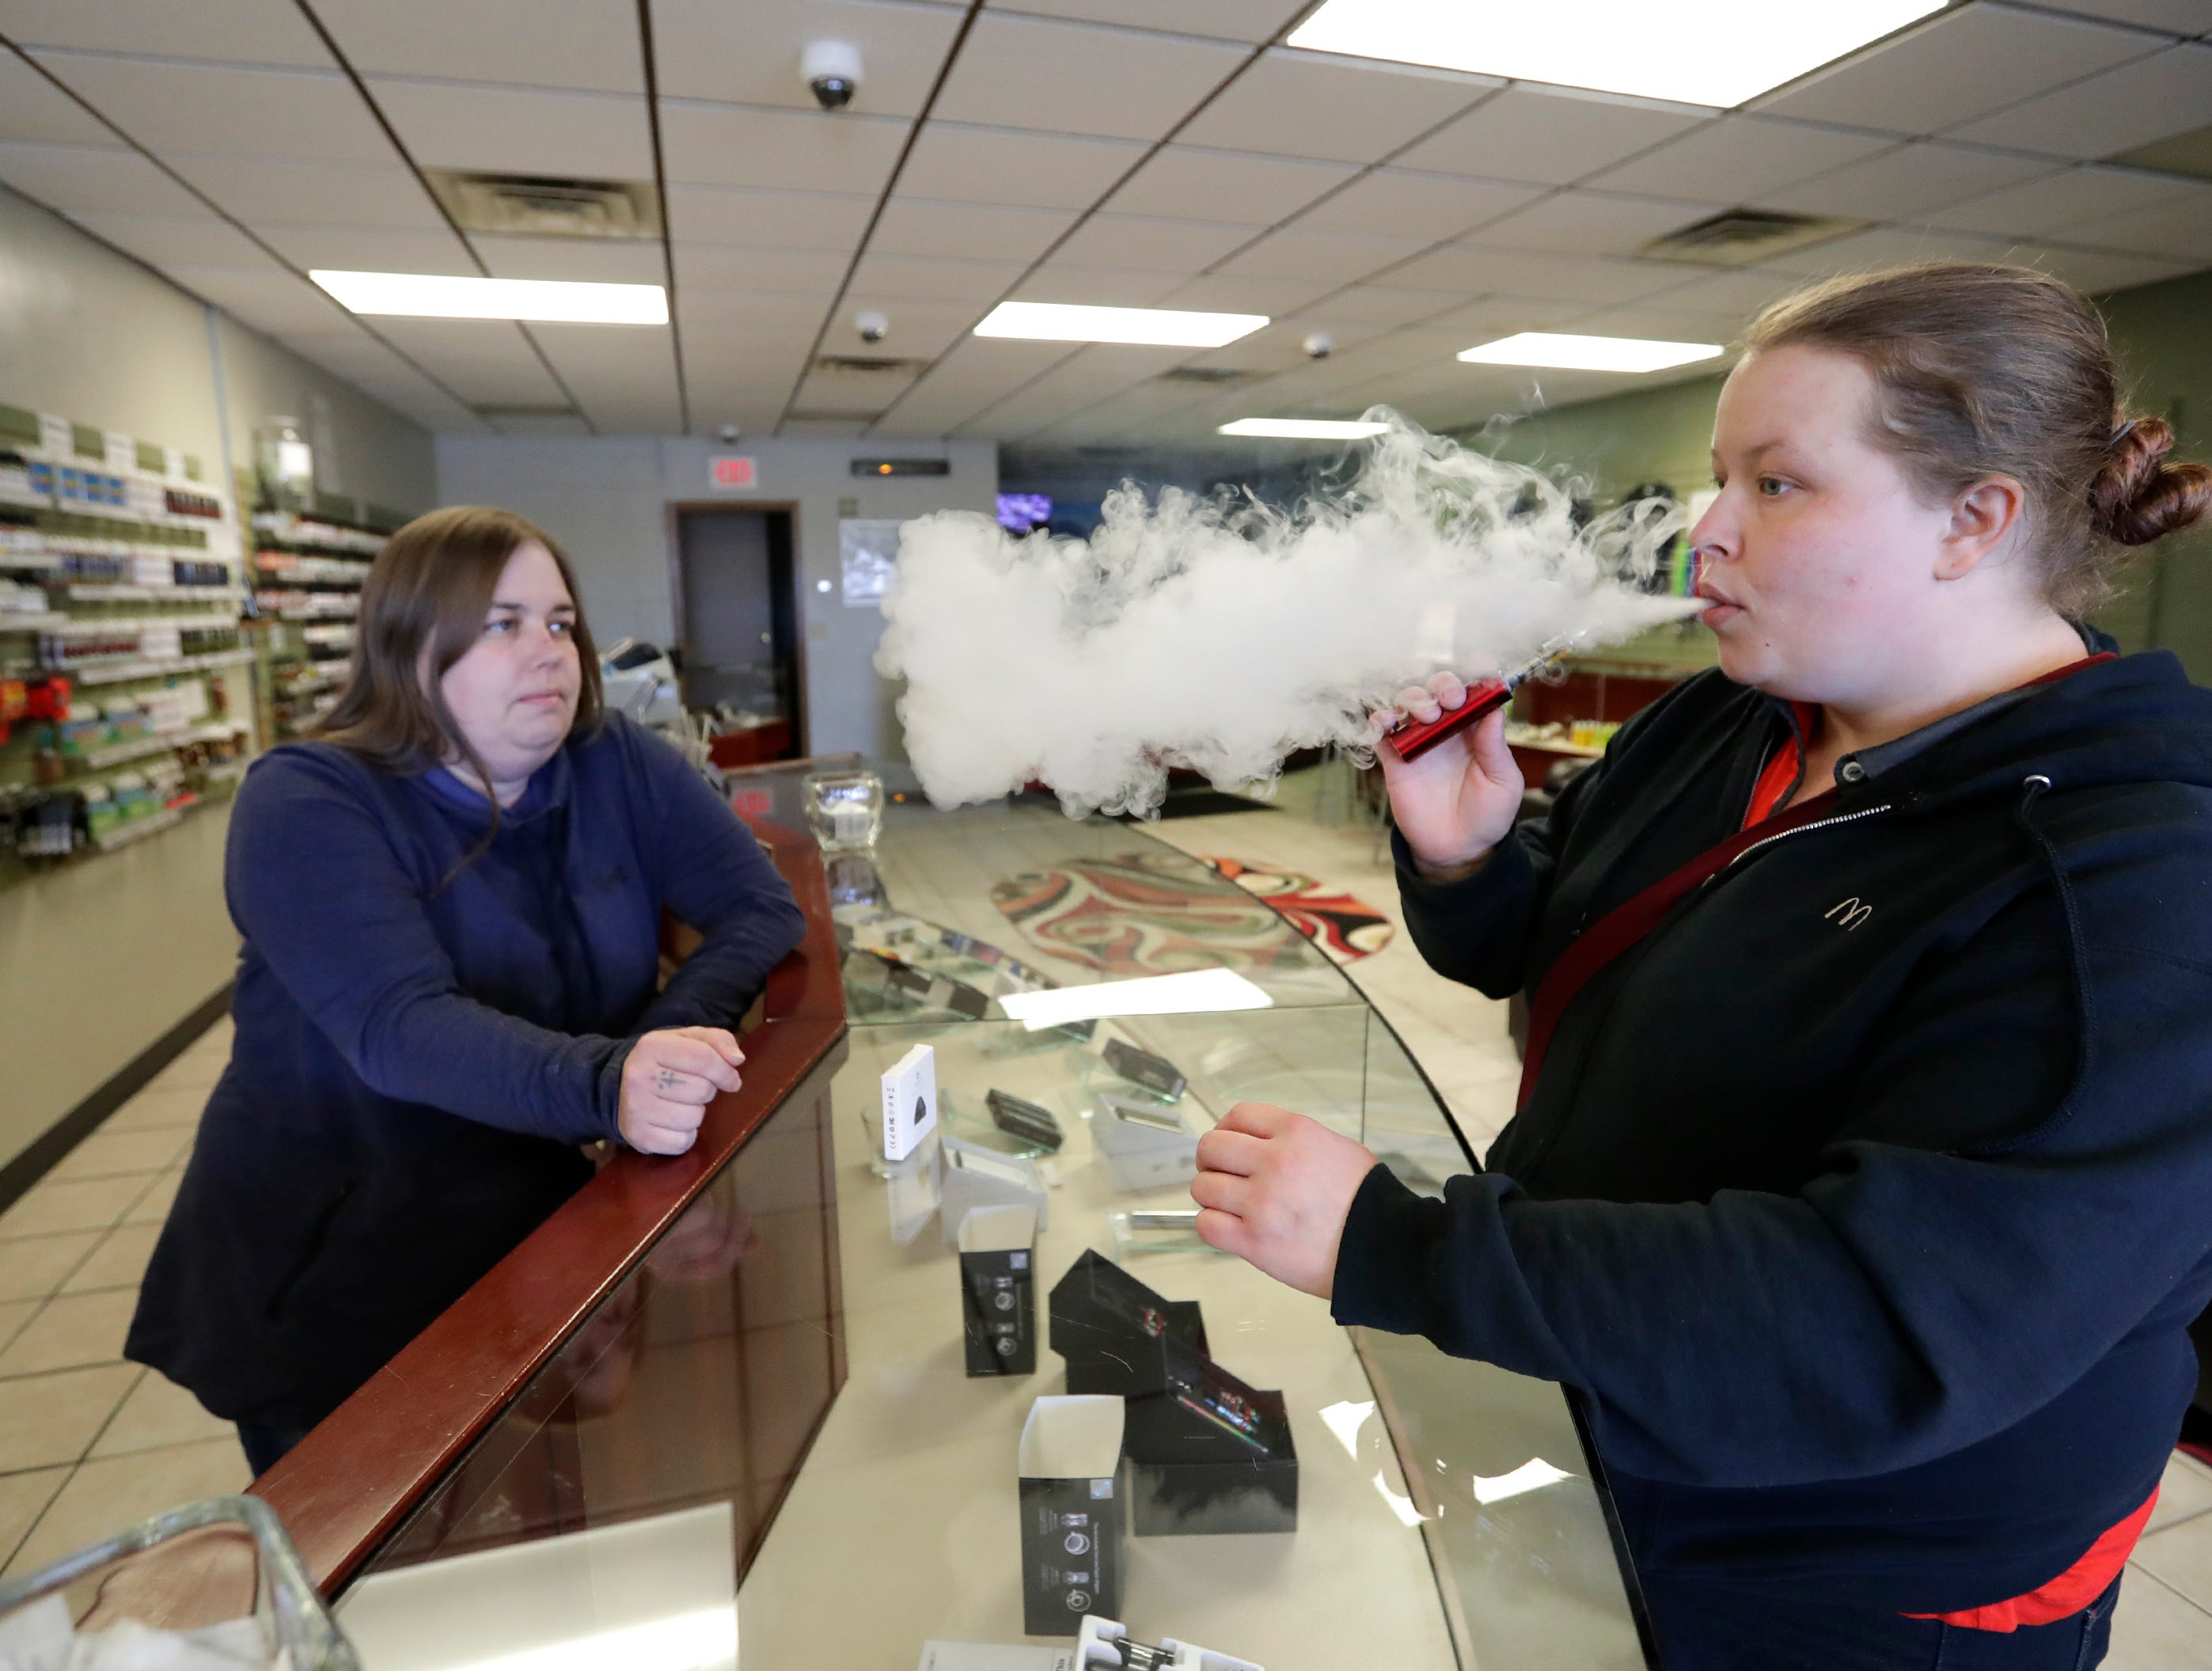 Co-owner Beth Kempen, left, assists Amber Velpel of Appleton as she tries different e-liquid samples for her vape MOD at EVapor of Appleton Wednesday, January 16, 2019, in Appleton, Wis. Kempen owns the shop with her husband Ken Kempen.